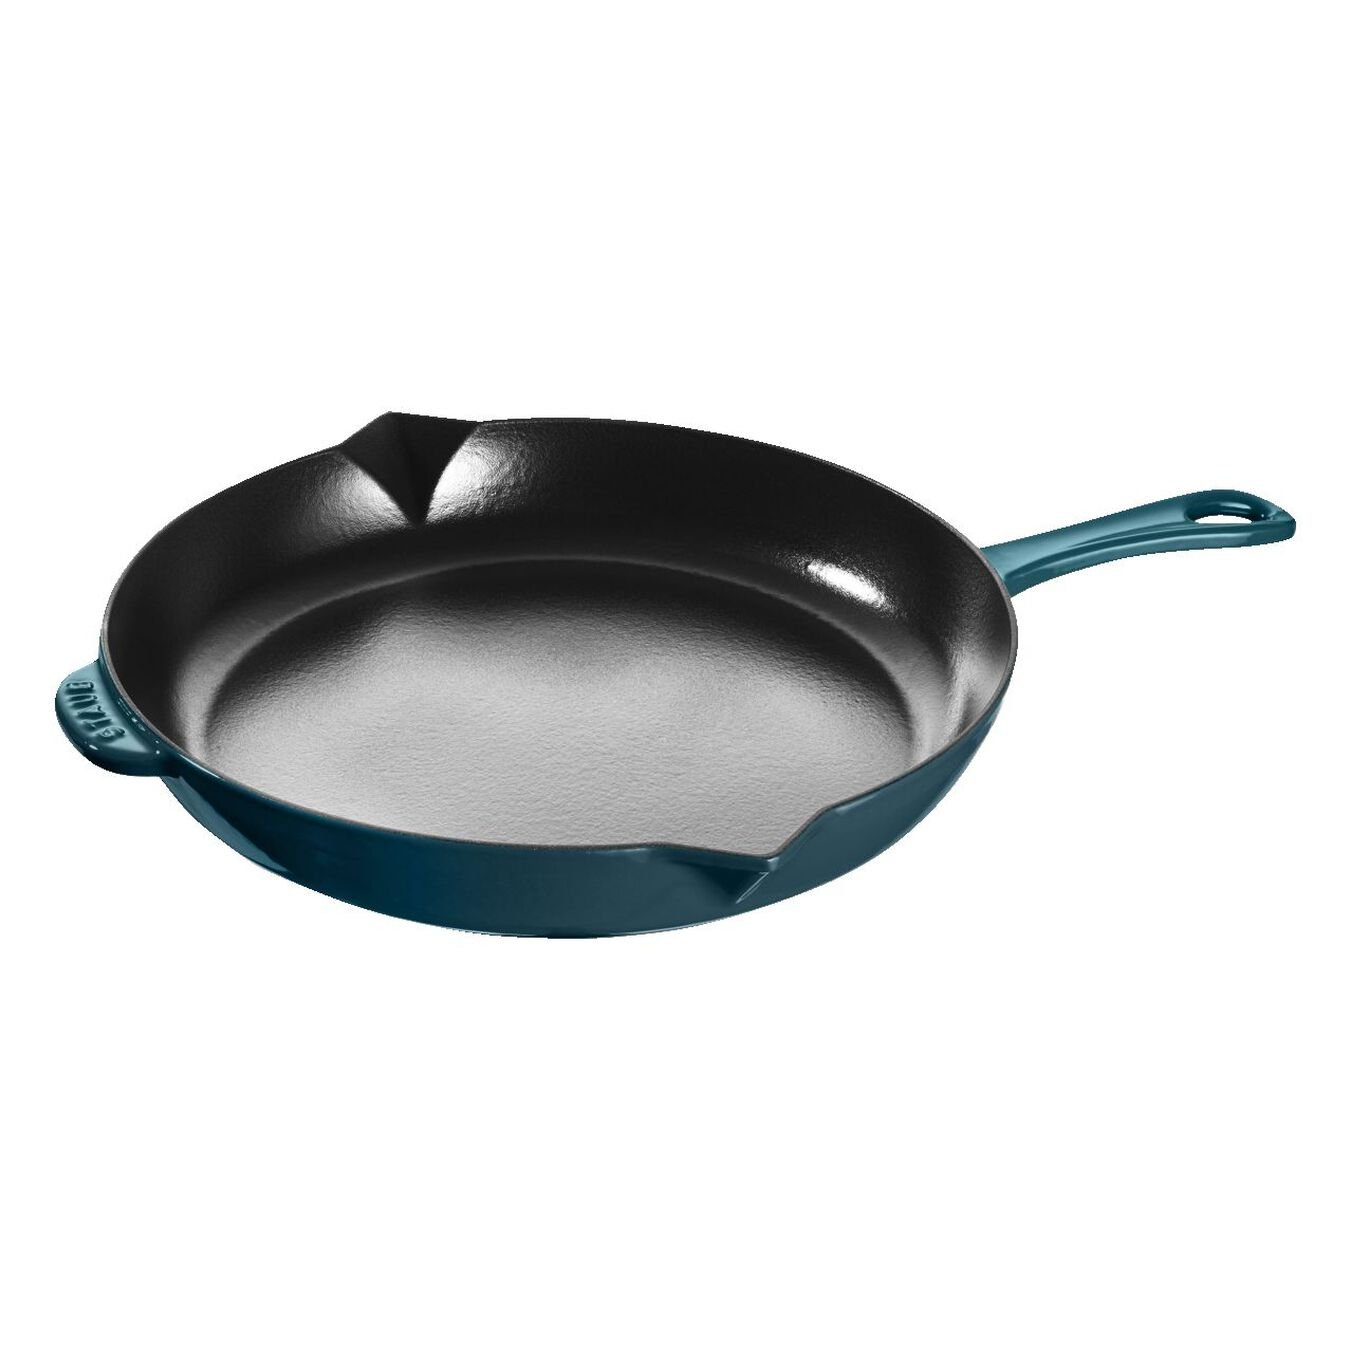 12-inch, Frying pan, la mer - Visual Imperfections,,large 1